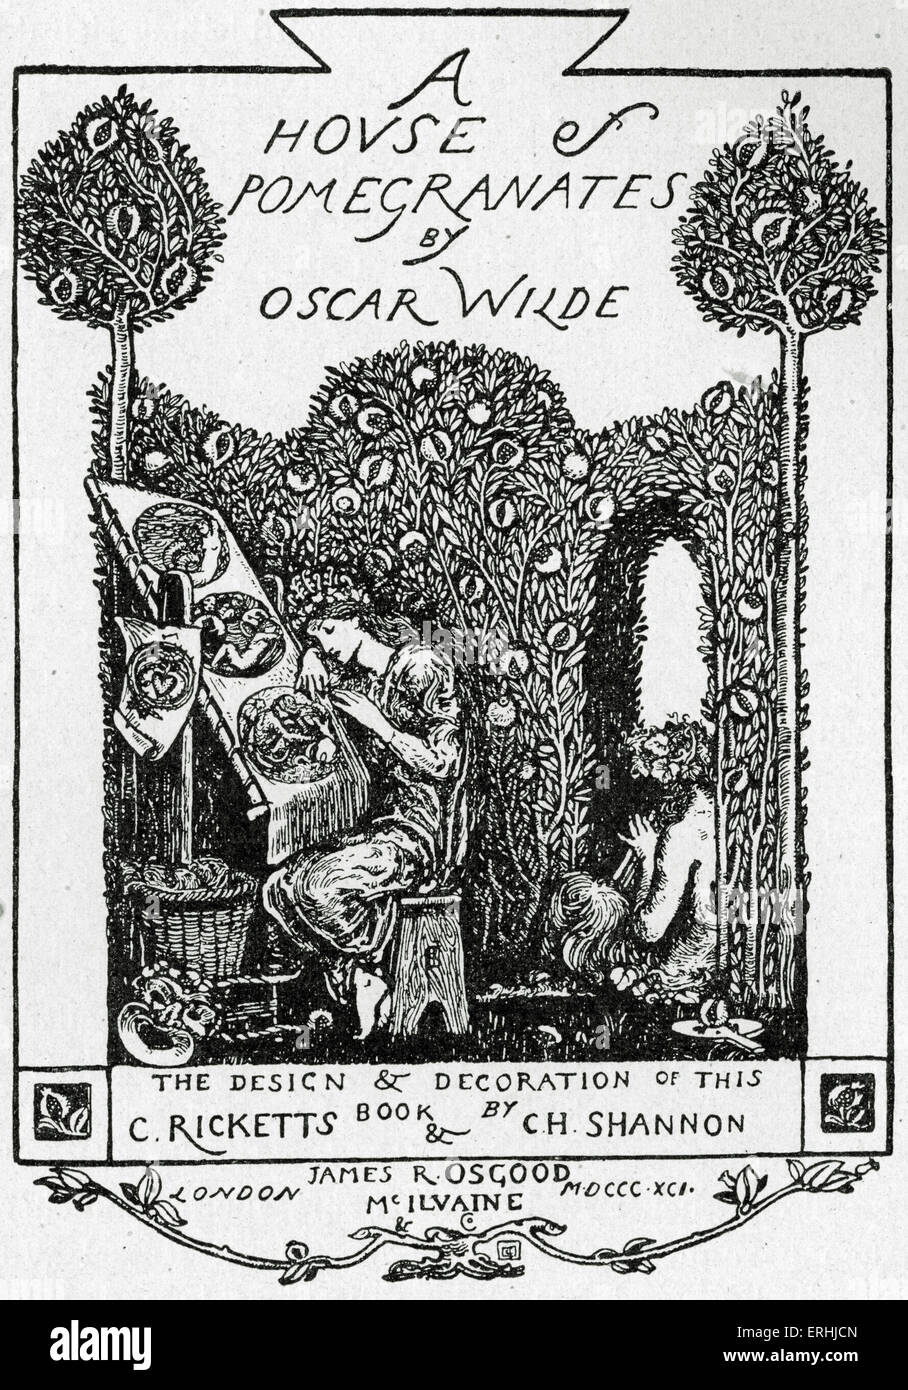 Oscar Wilde Cover Of The Anglo Irish Playwright Novelist And Poet S Collection Of Fairy Tales A House Of Pomegranates